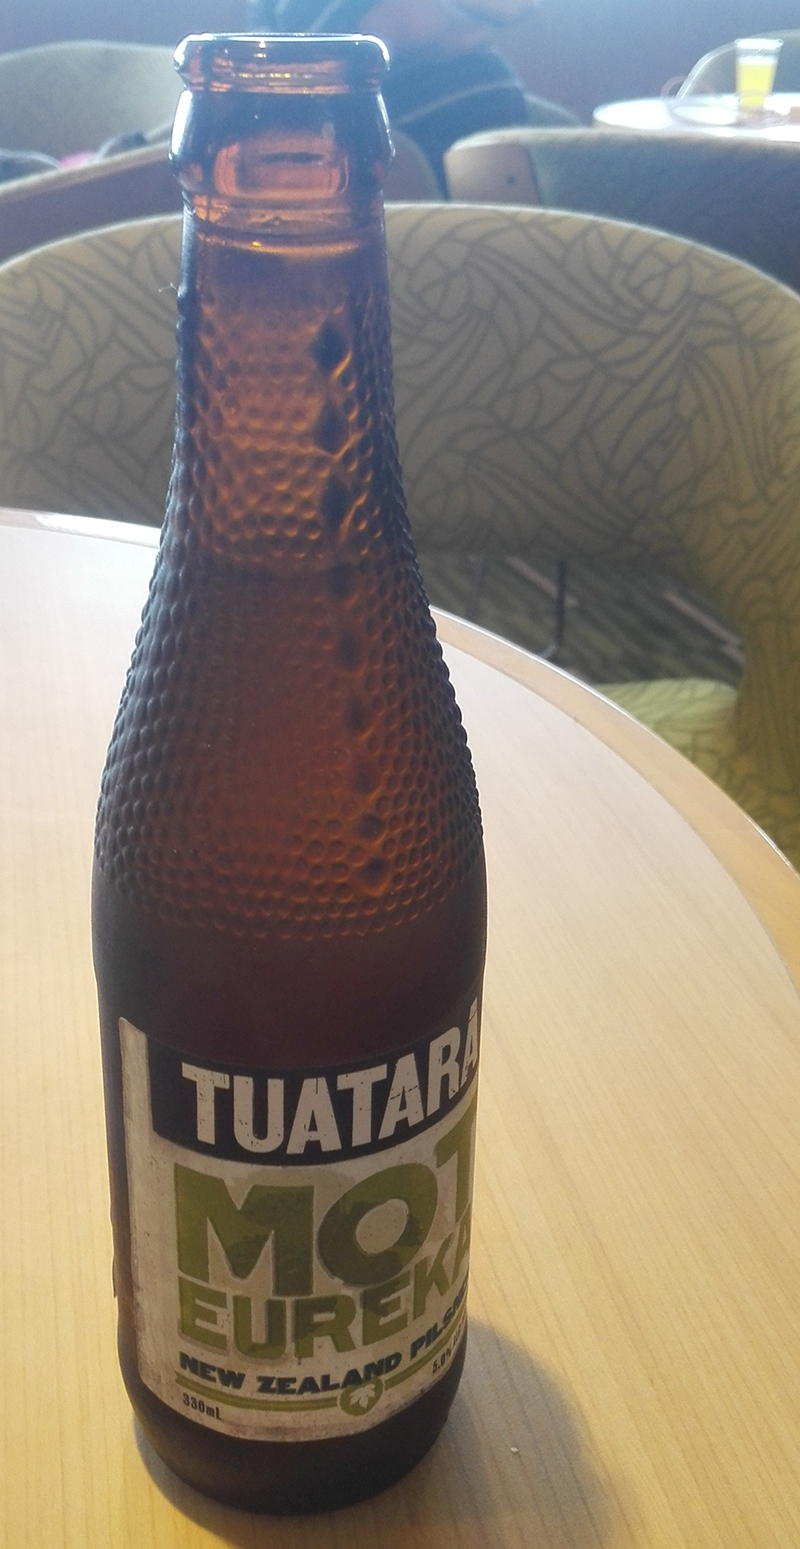 I love the design of the glass bottle that tuatara beer is in.